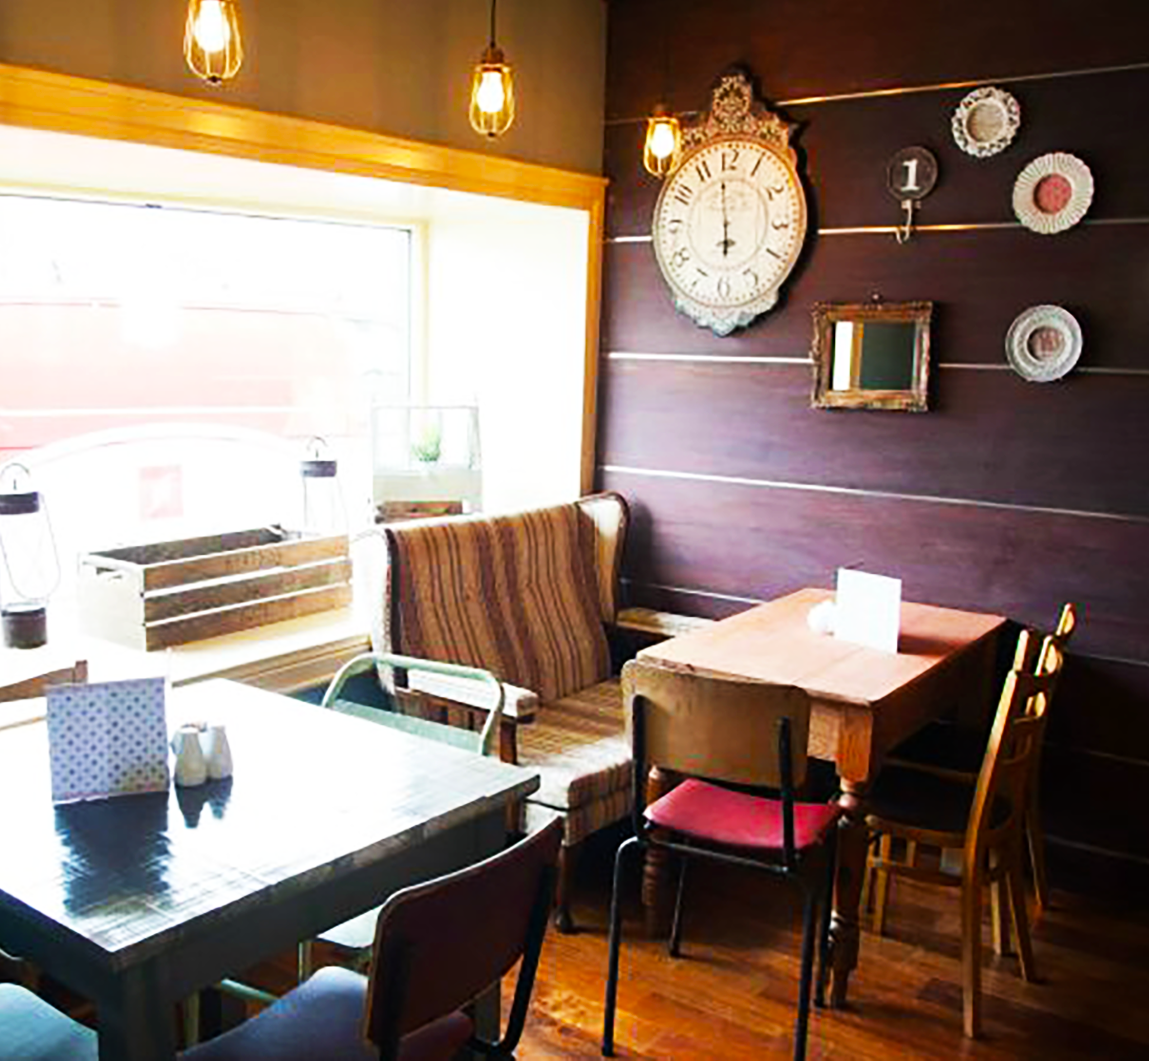 Cafe fitouts by Teamwoodcraft